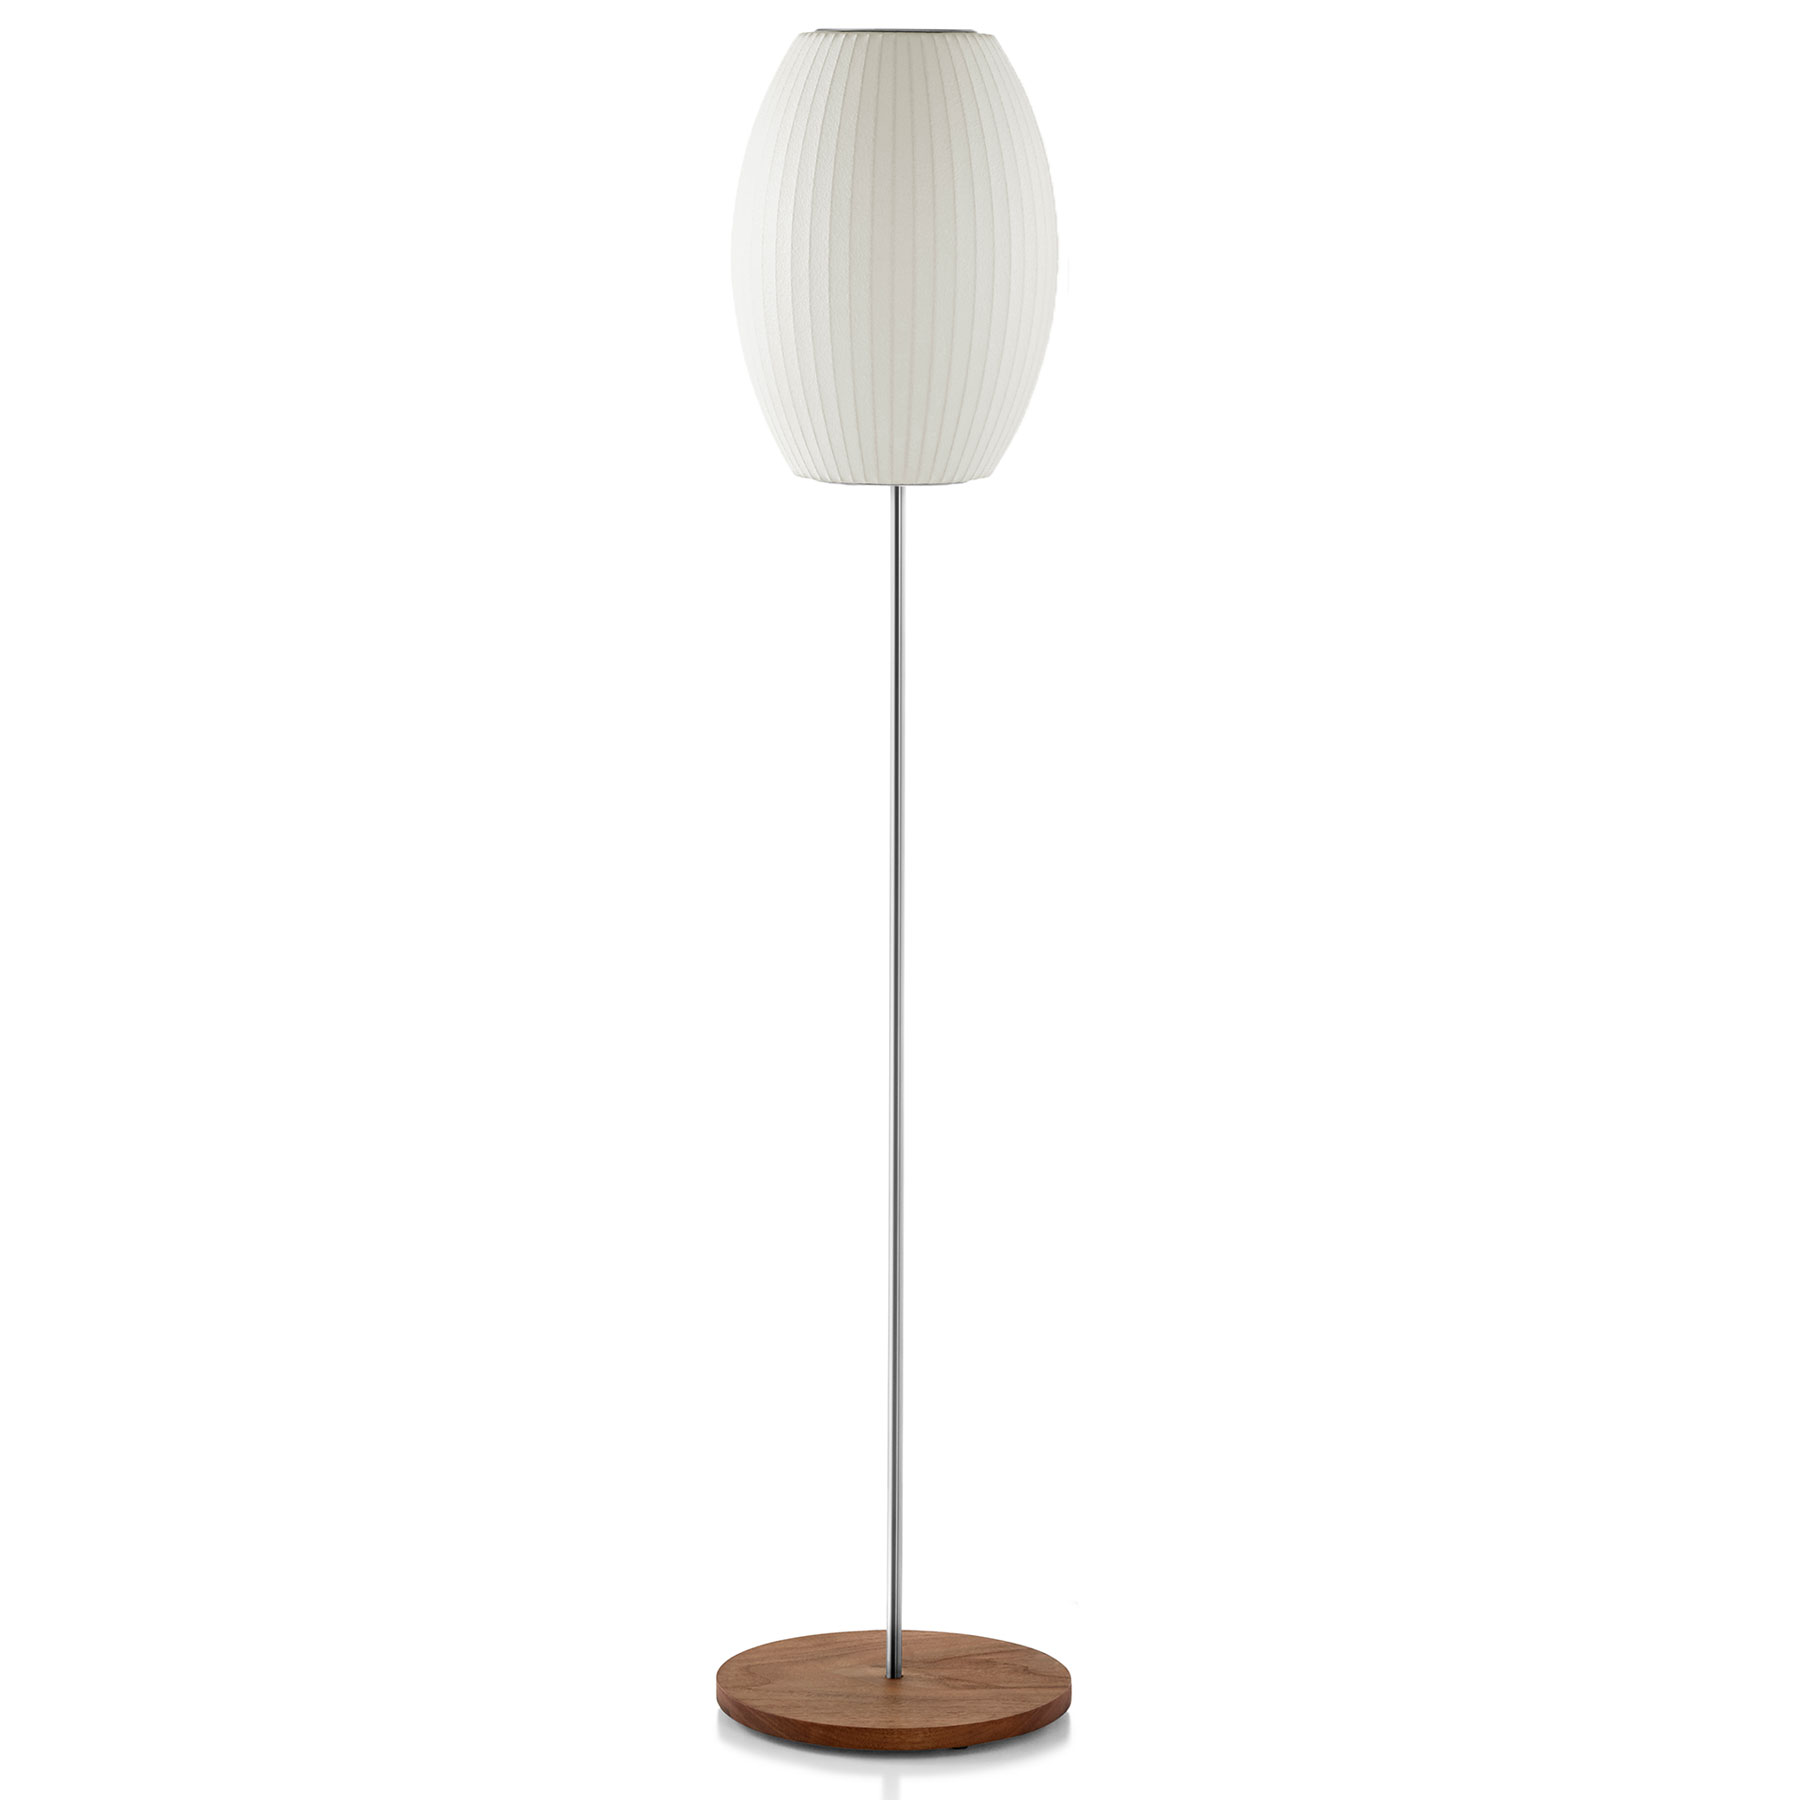 Cigar lotus floor lamp by george nelson by modernica for Lotus floor lamp white